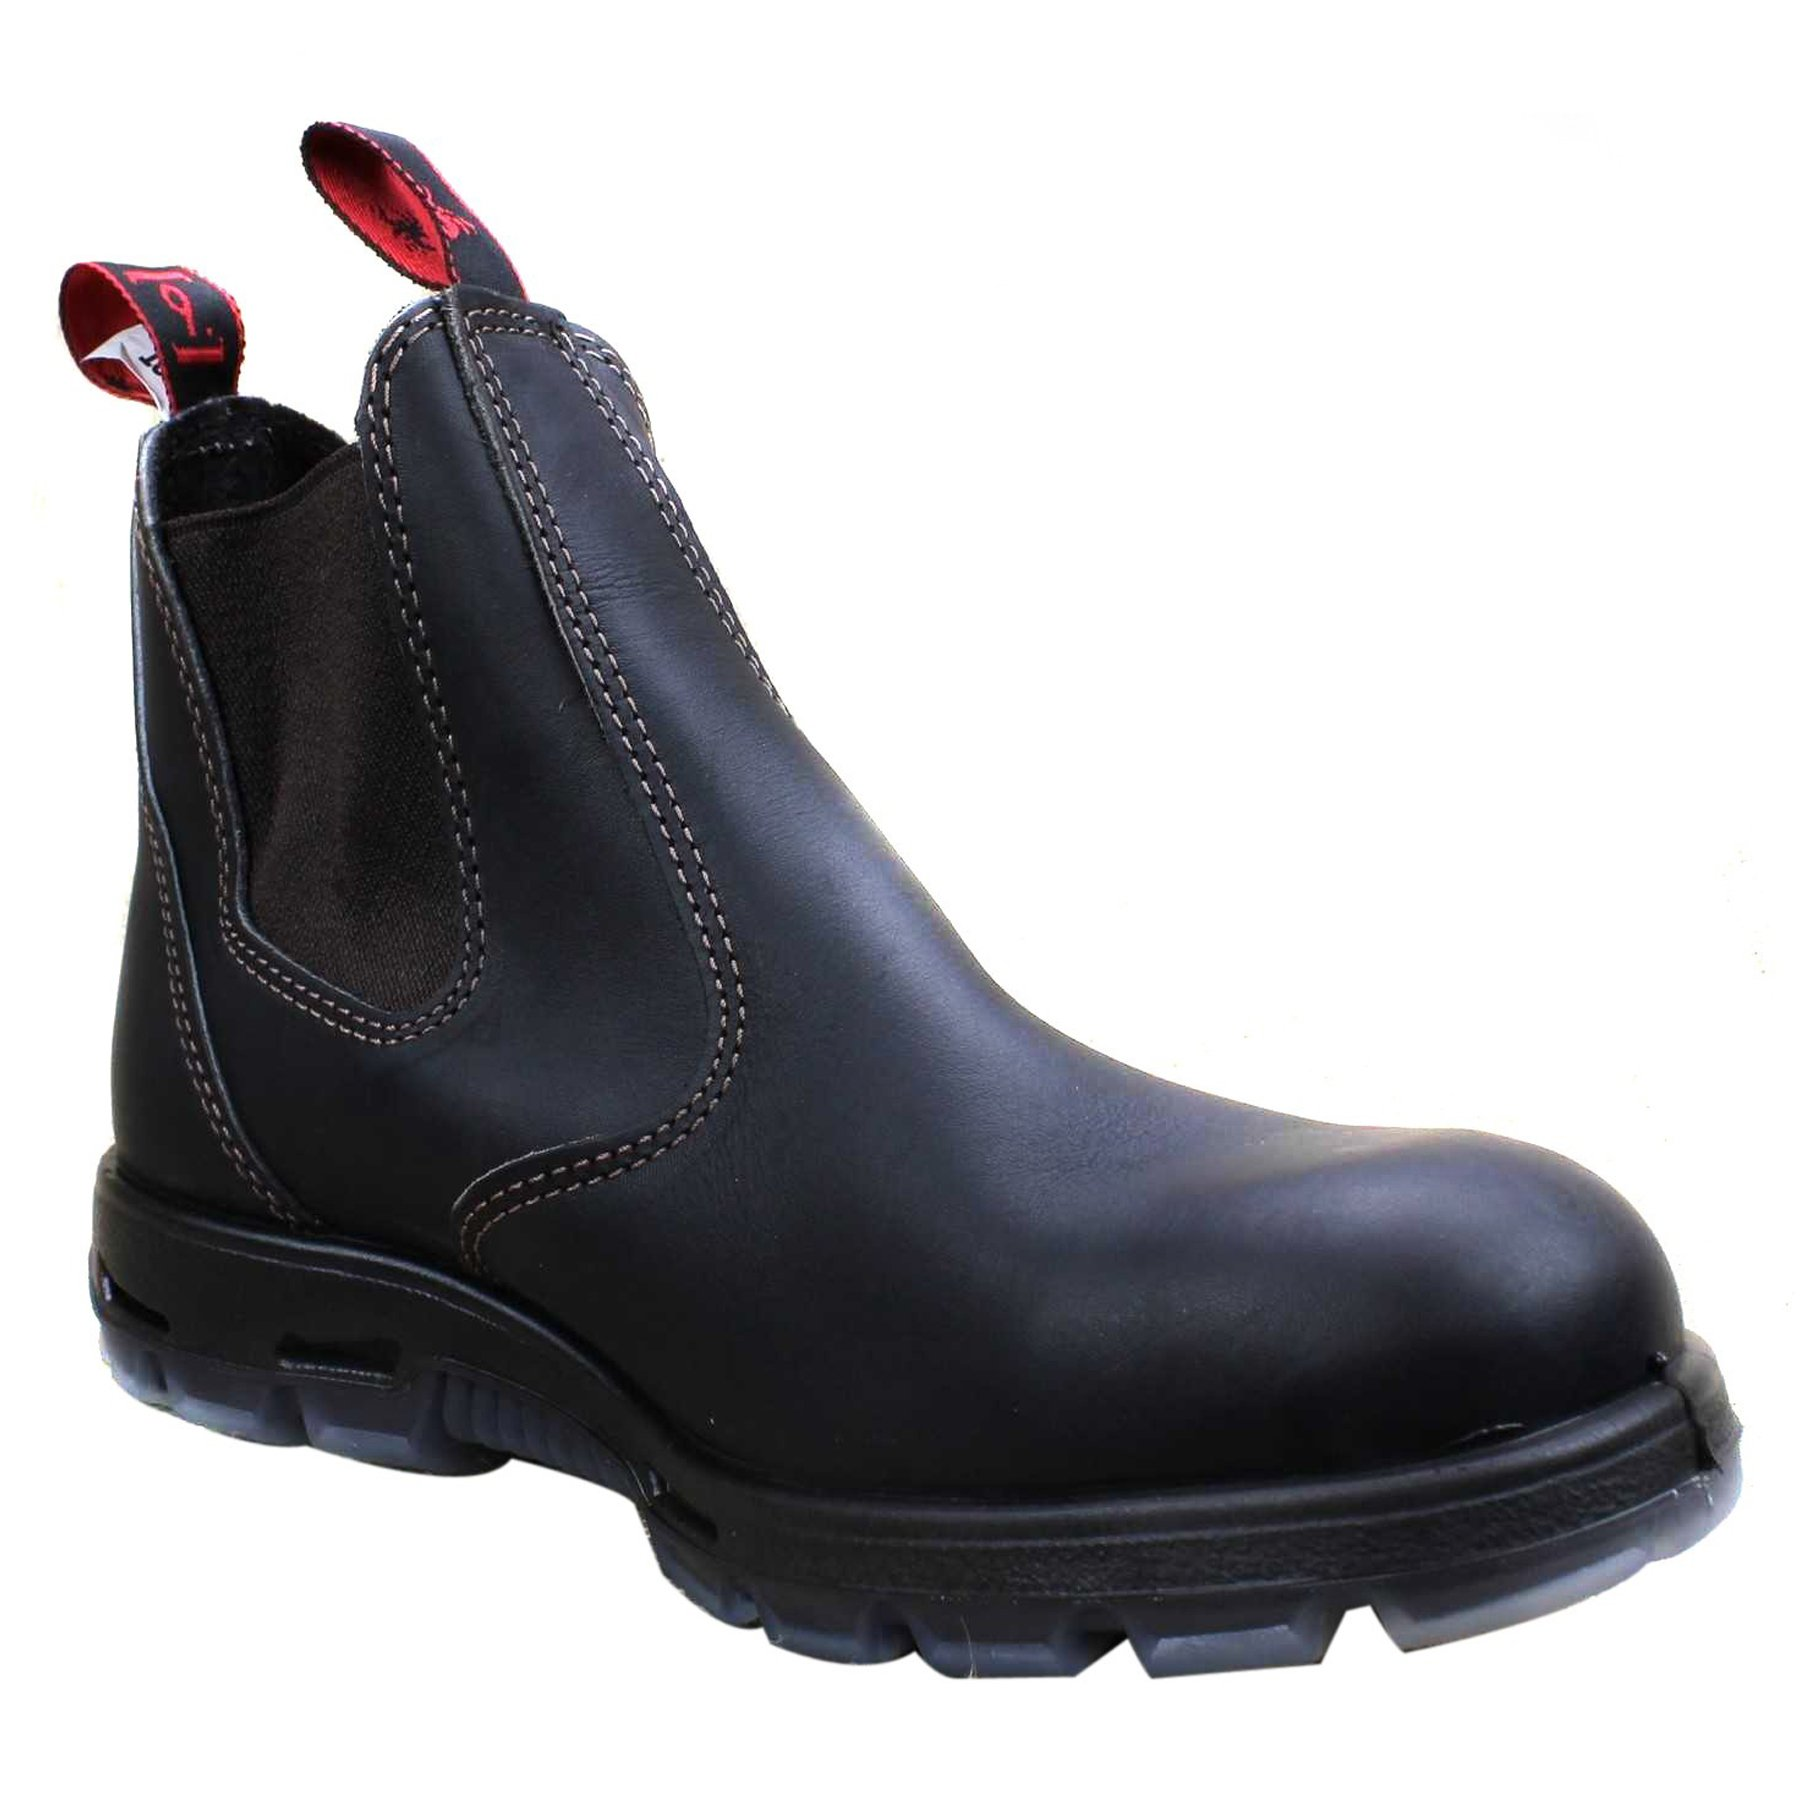 2071693c4335 RedbacK Men s Bobcat UBOK Dark Brown Elastic Sided Soft Toe Leather Work  Boot   Fire   Safety Boots   Clothing